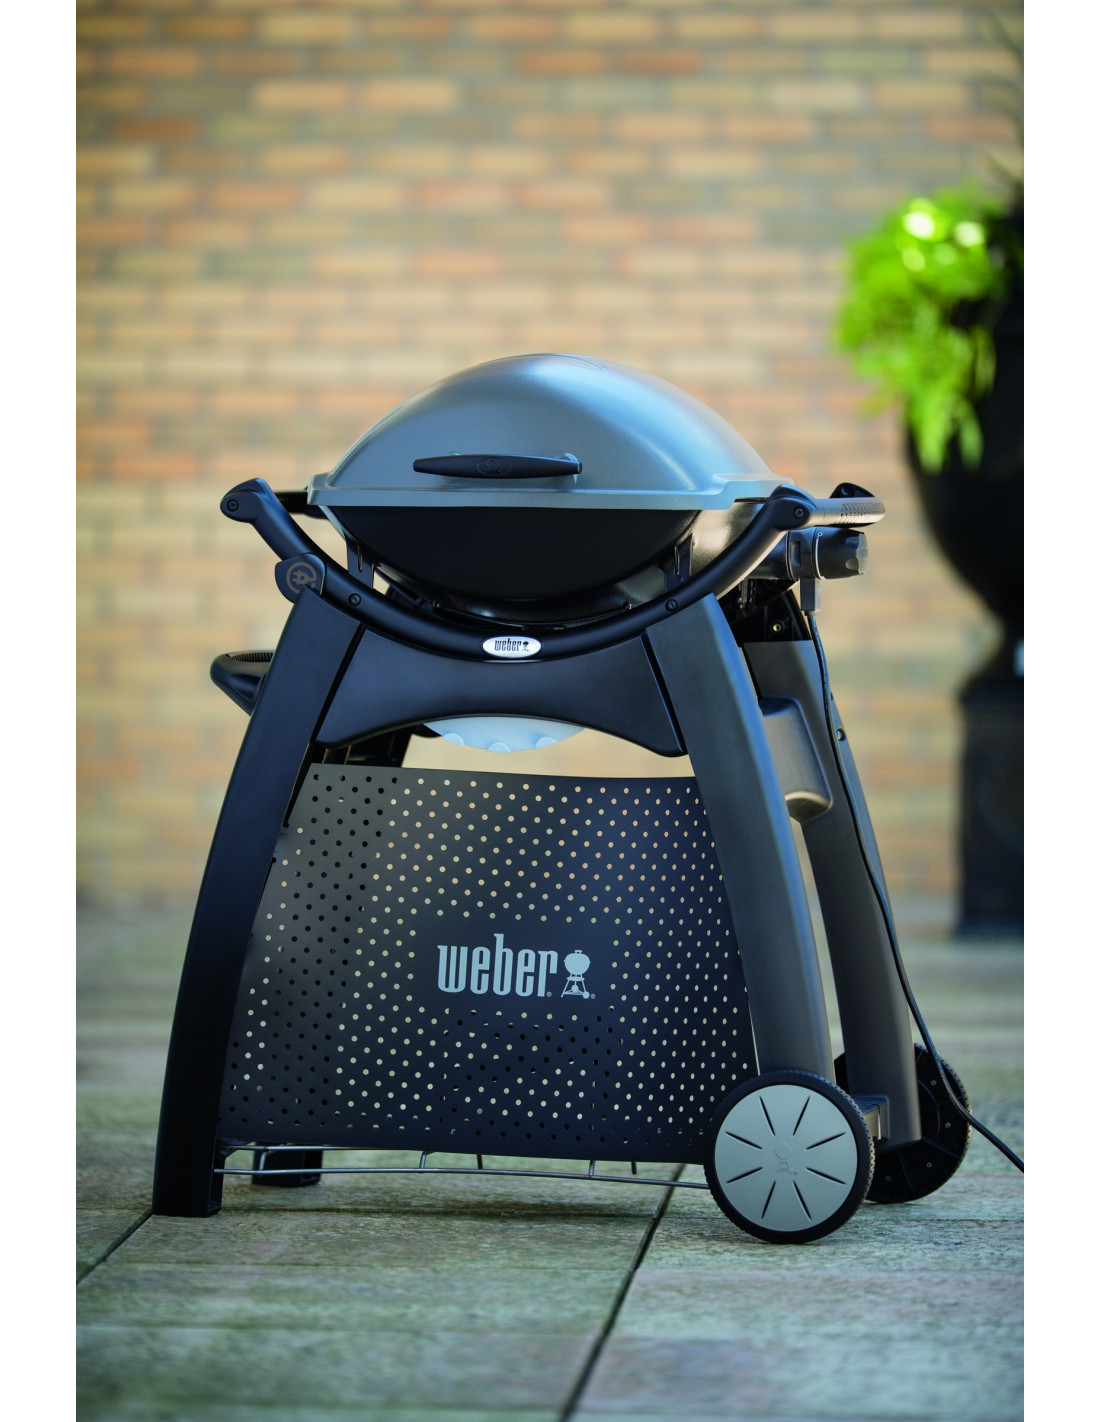 chariot deluxe 6526 pour barbecue weber gaz q series 2000. Black Bedroom Furniture Sets. Home Design Ideas